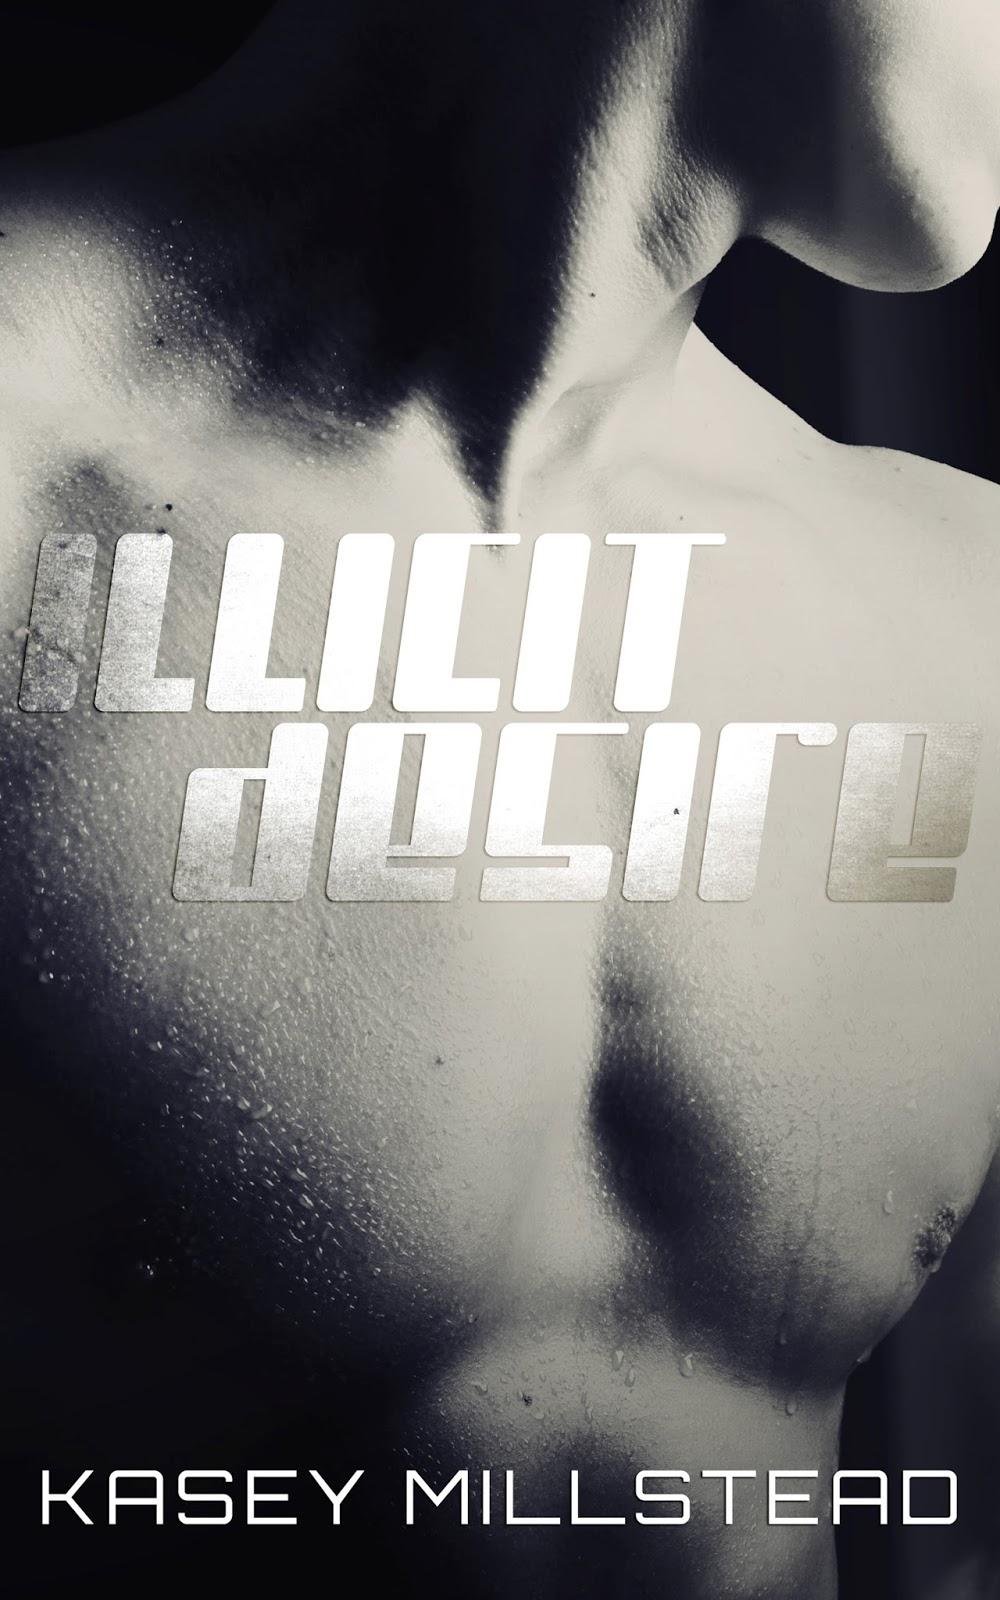 Illicit Desire by Kasey Millsread Cover Reveal and Giveaway